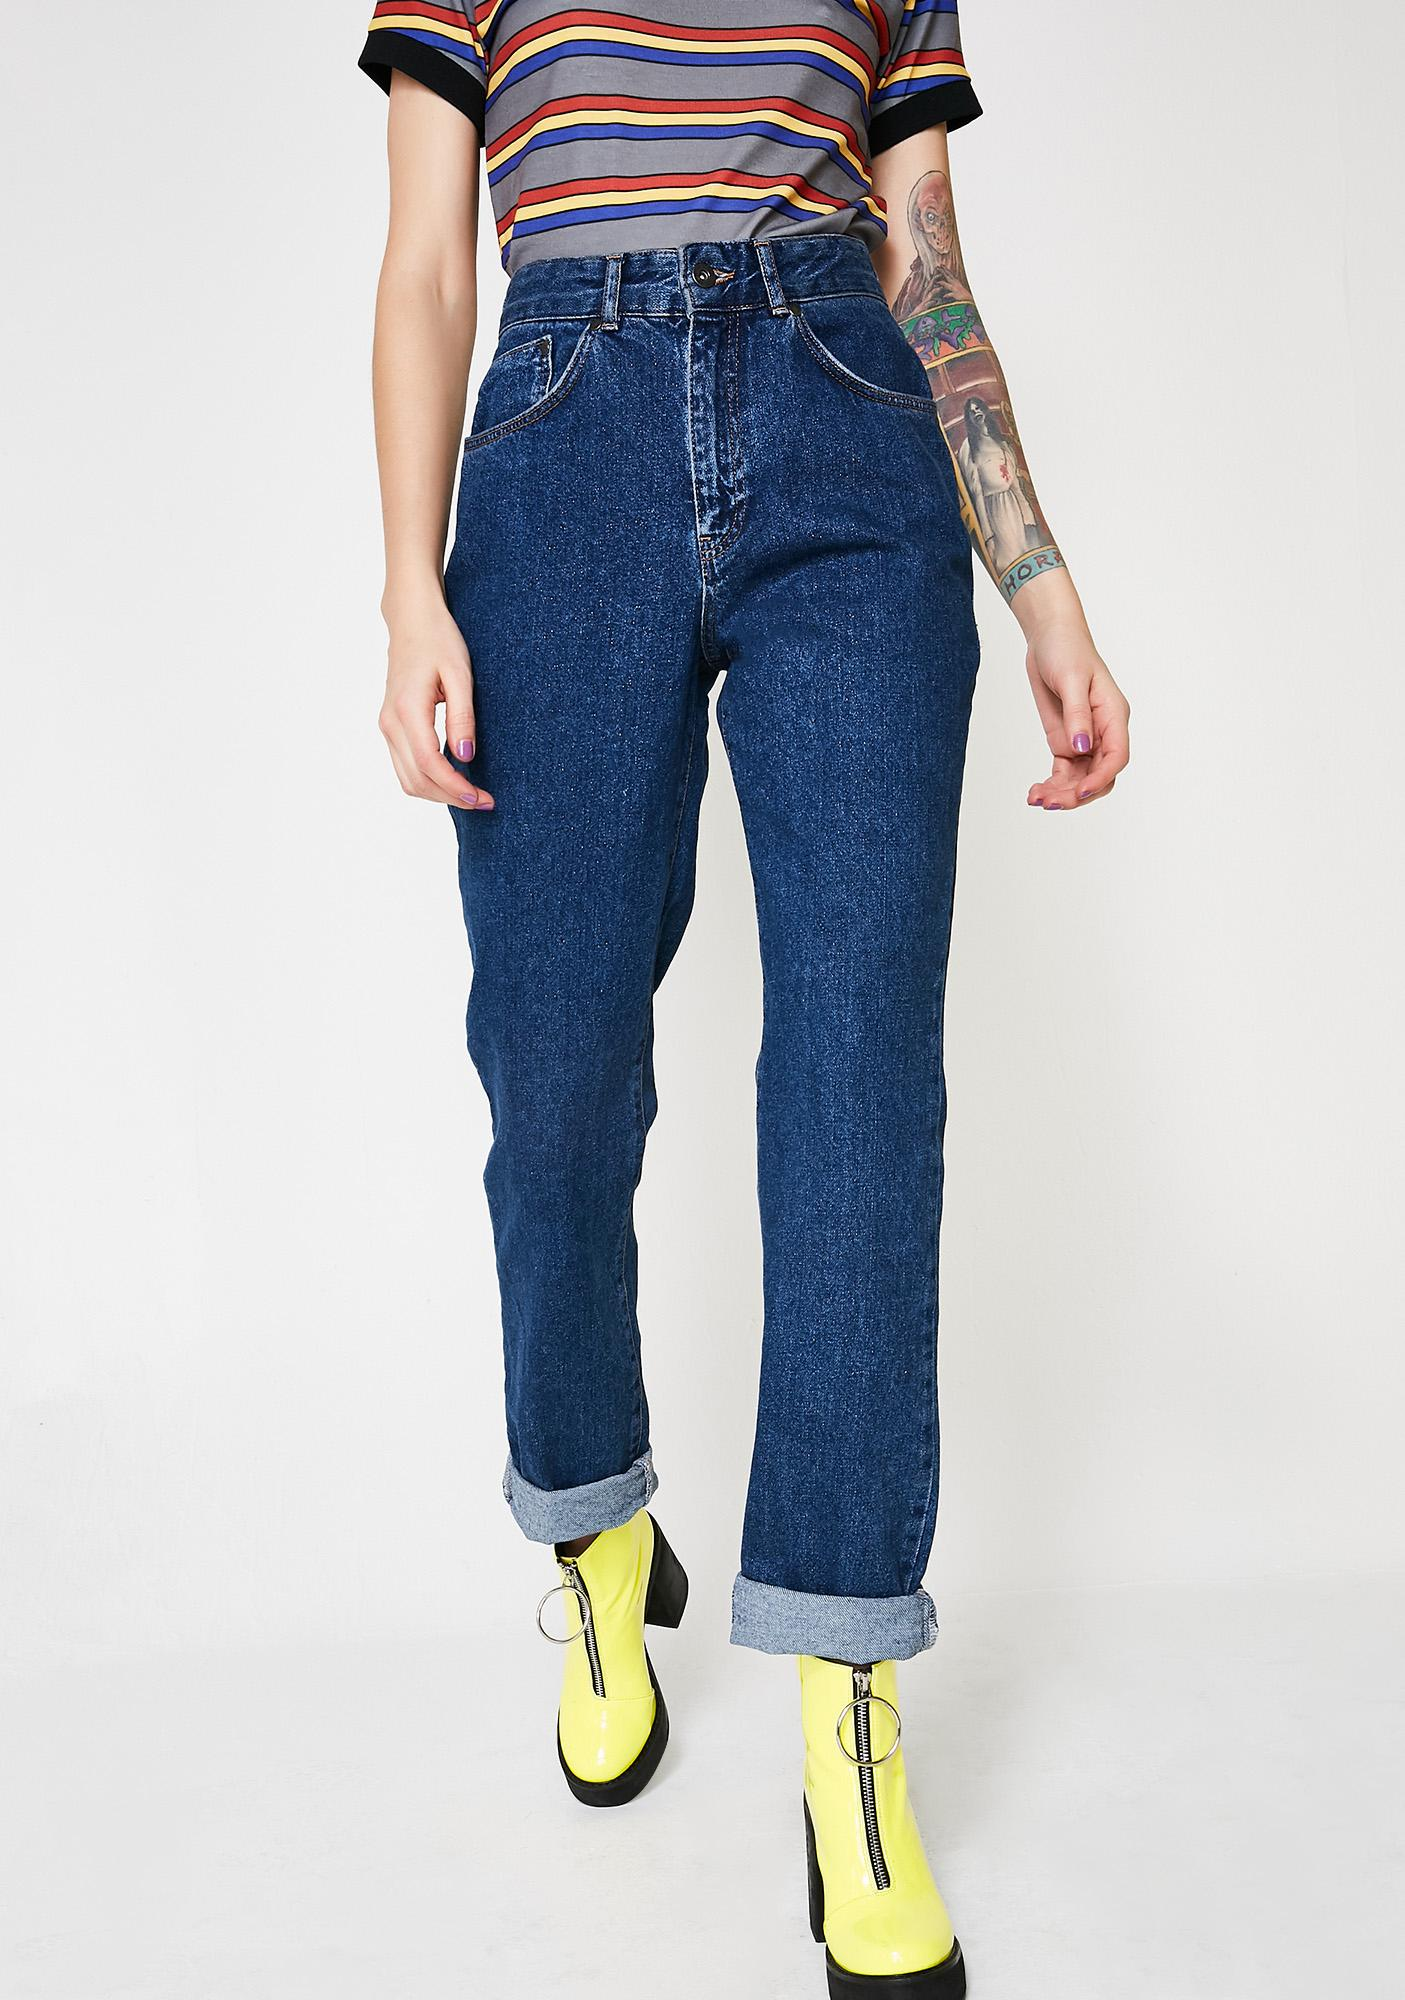 The Ragged Priest Indigo Double Butt Cut Jeans